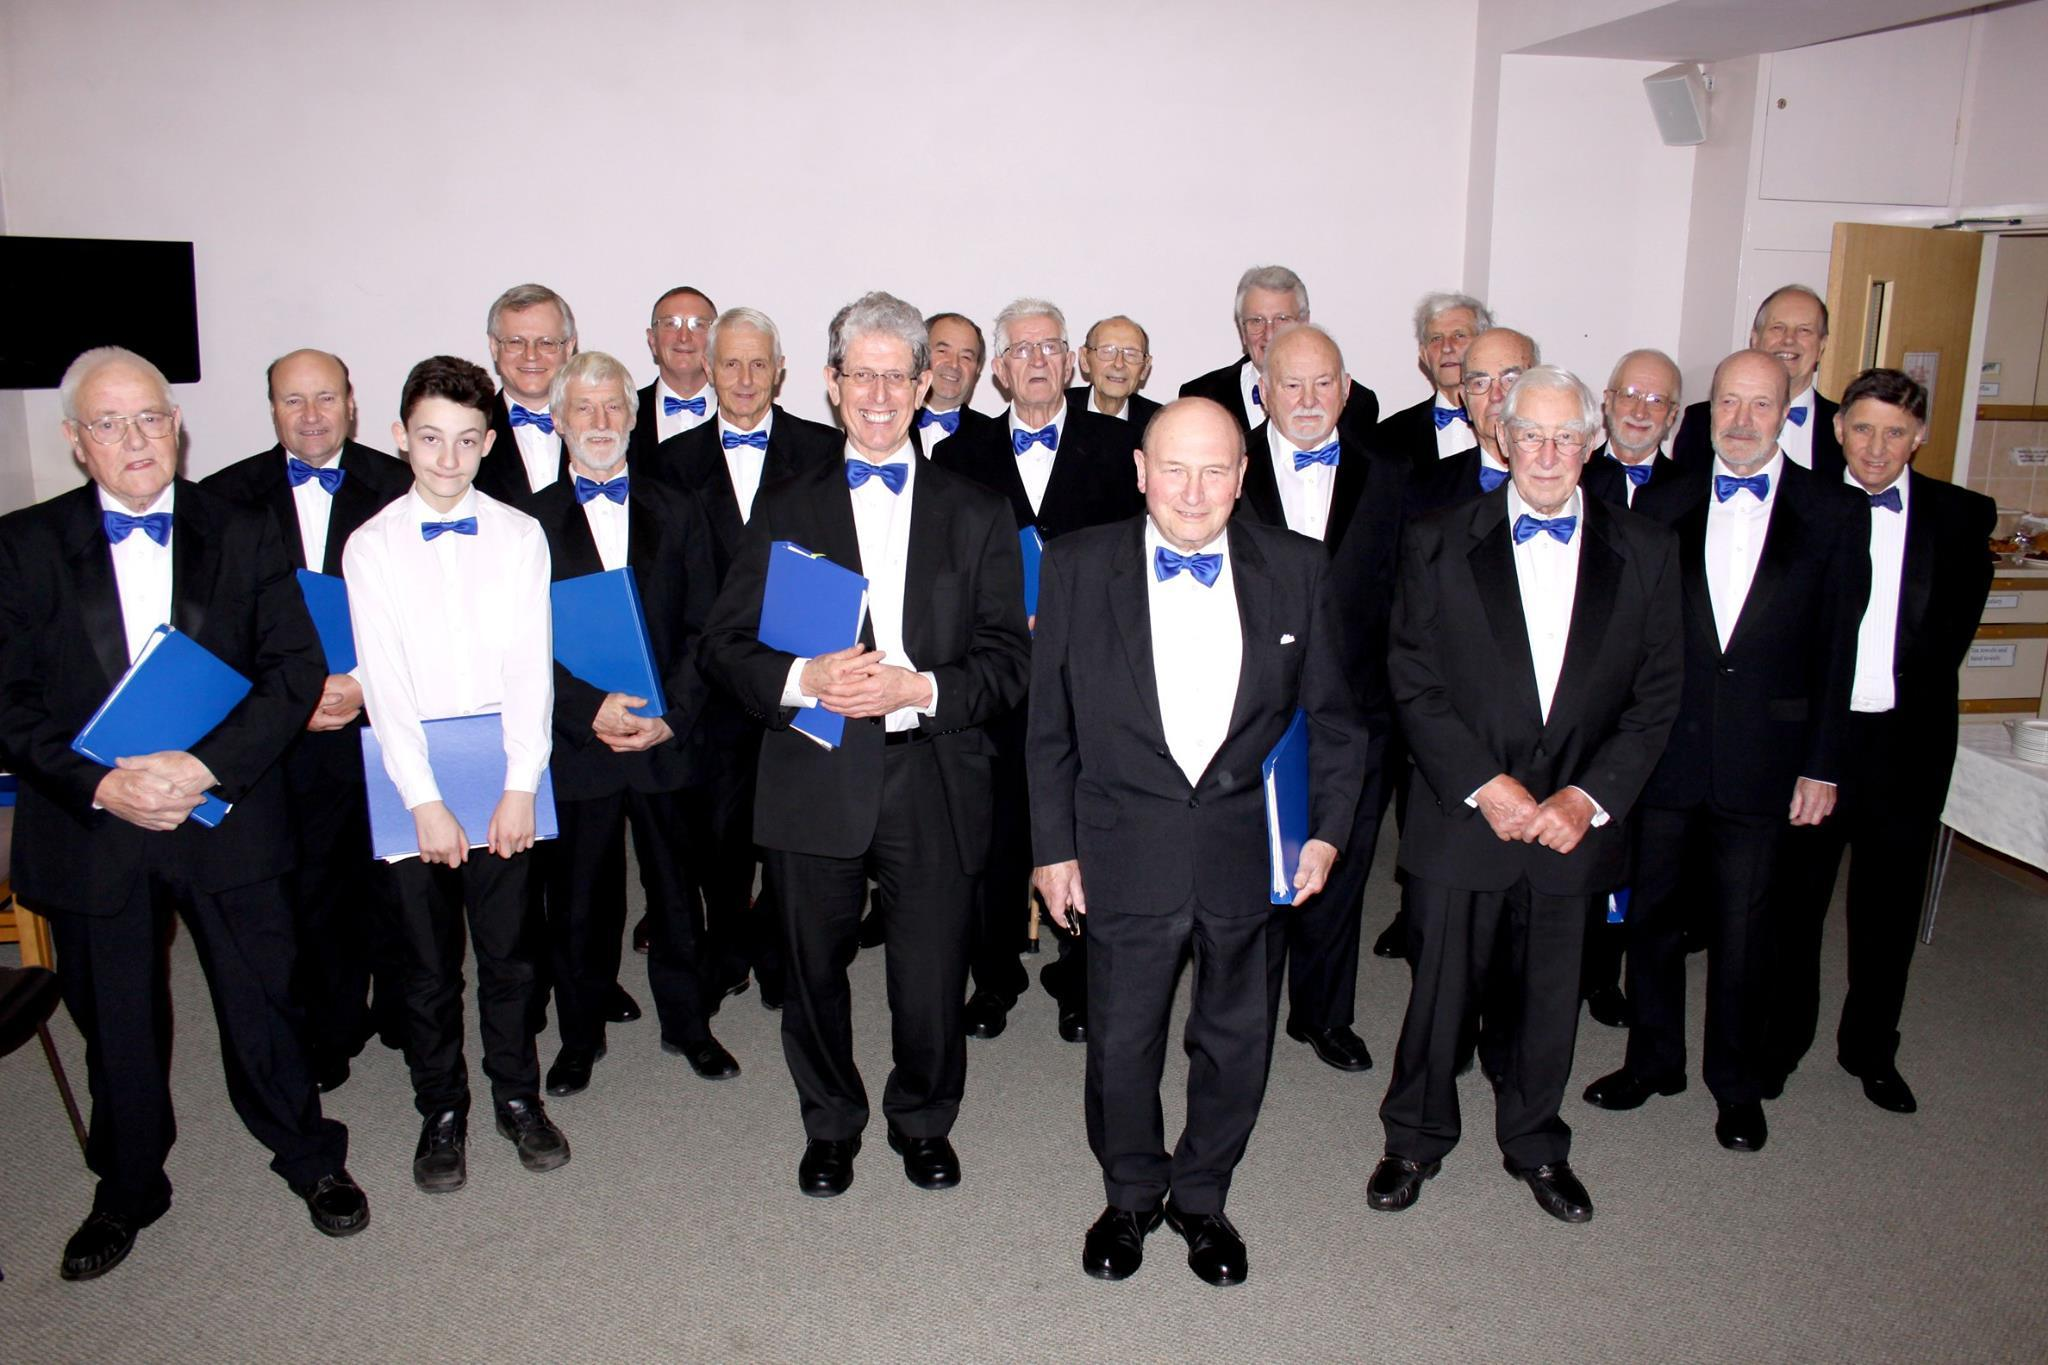 The Craven Arms Men's Chorus